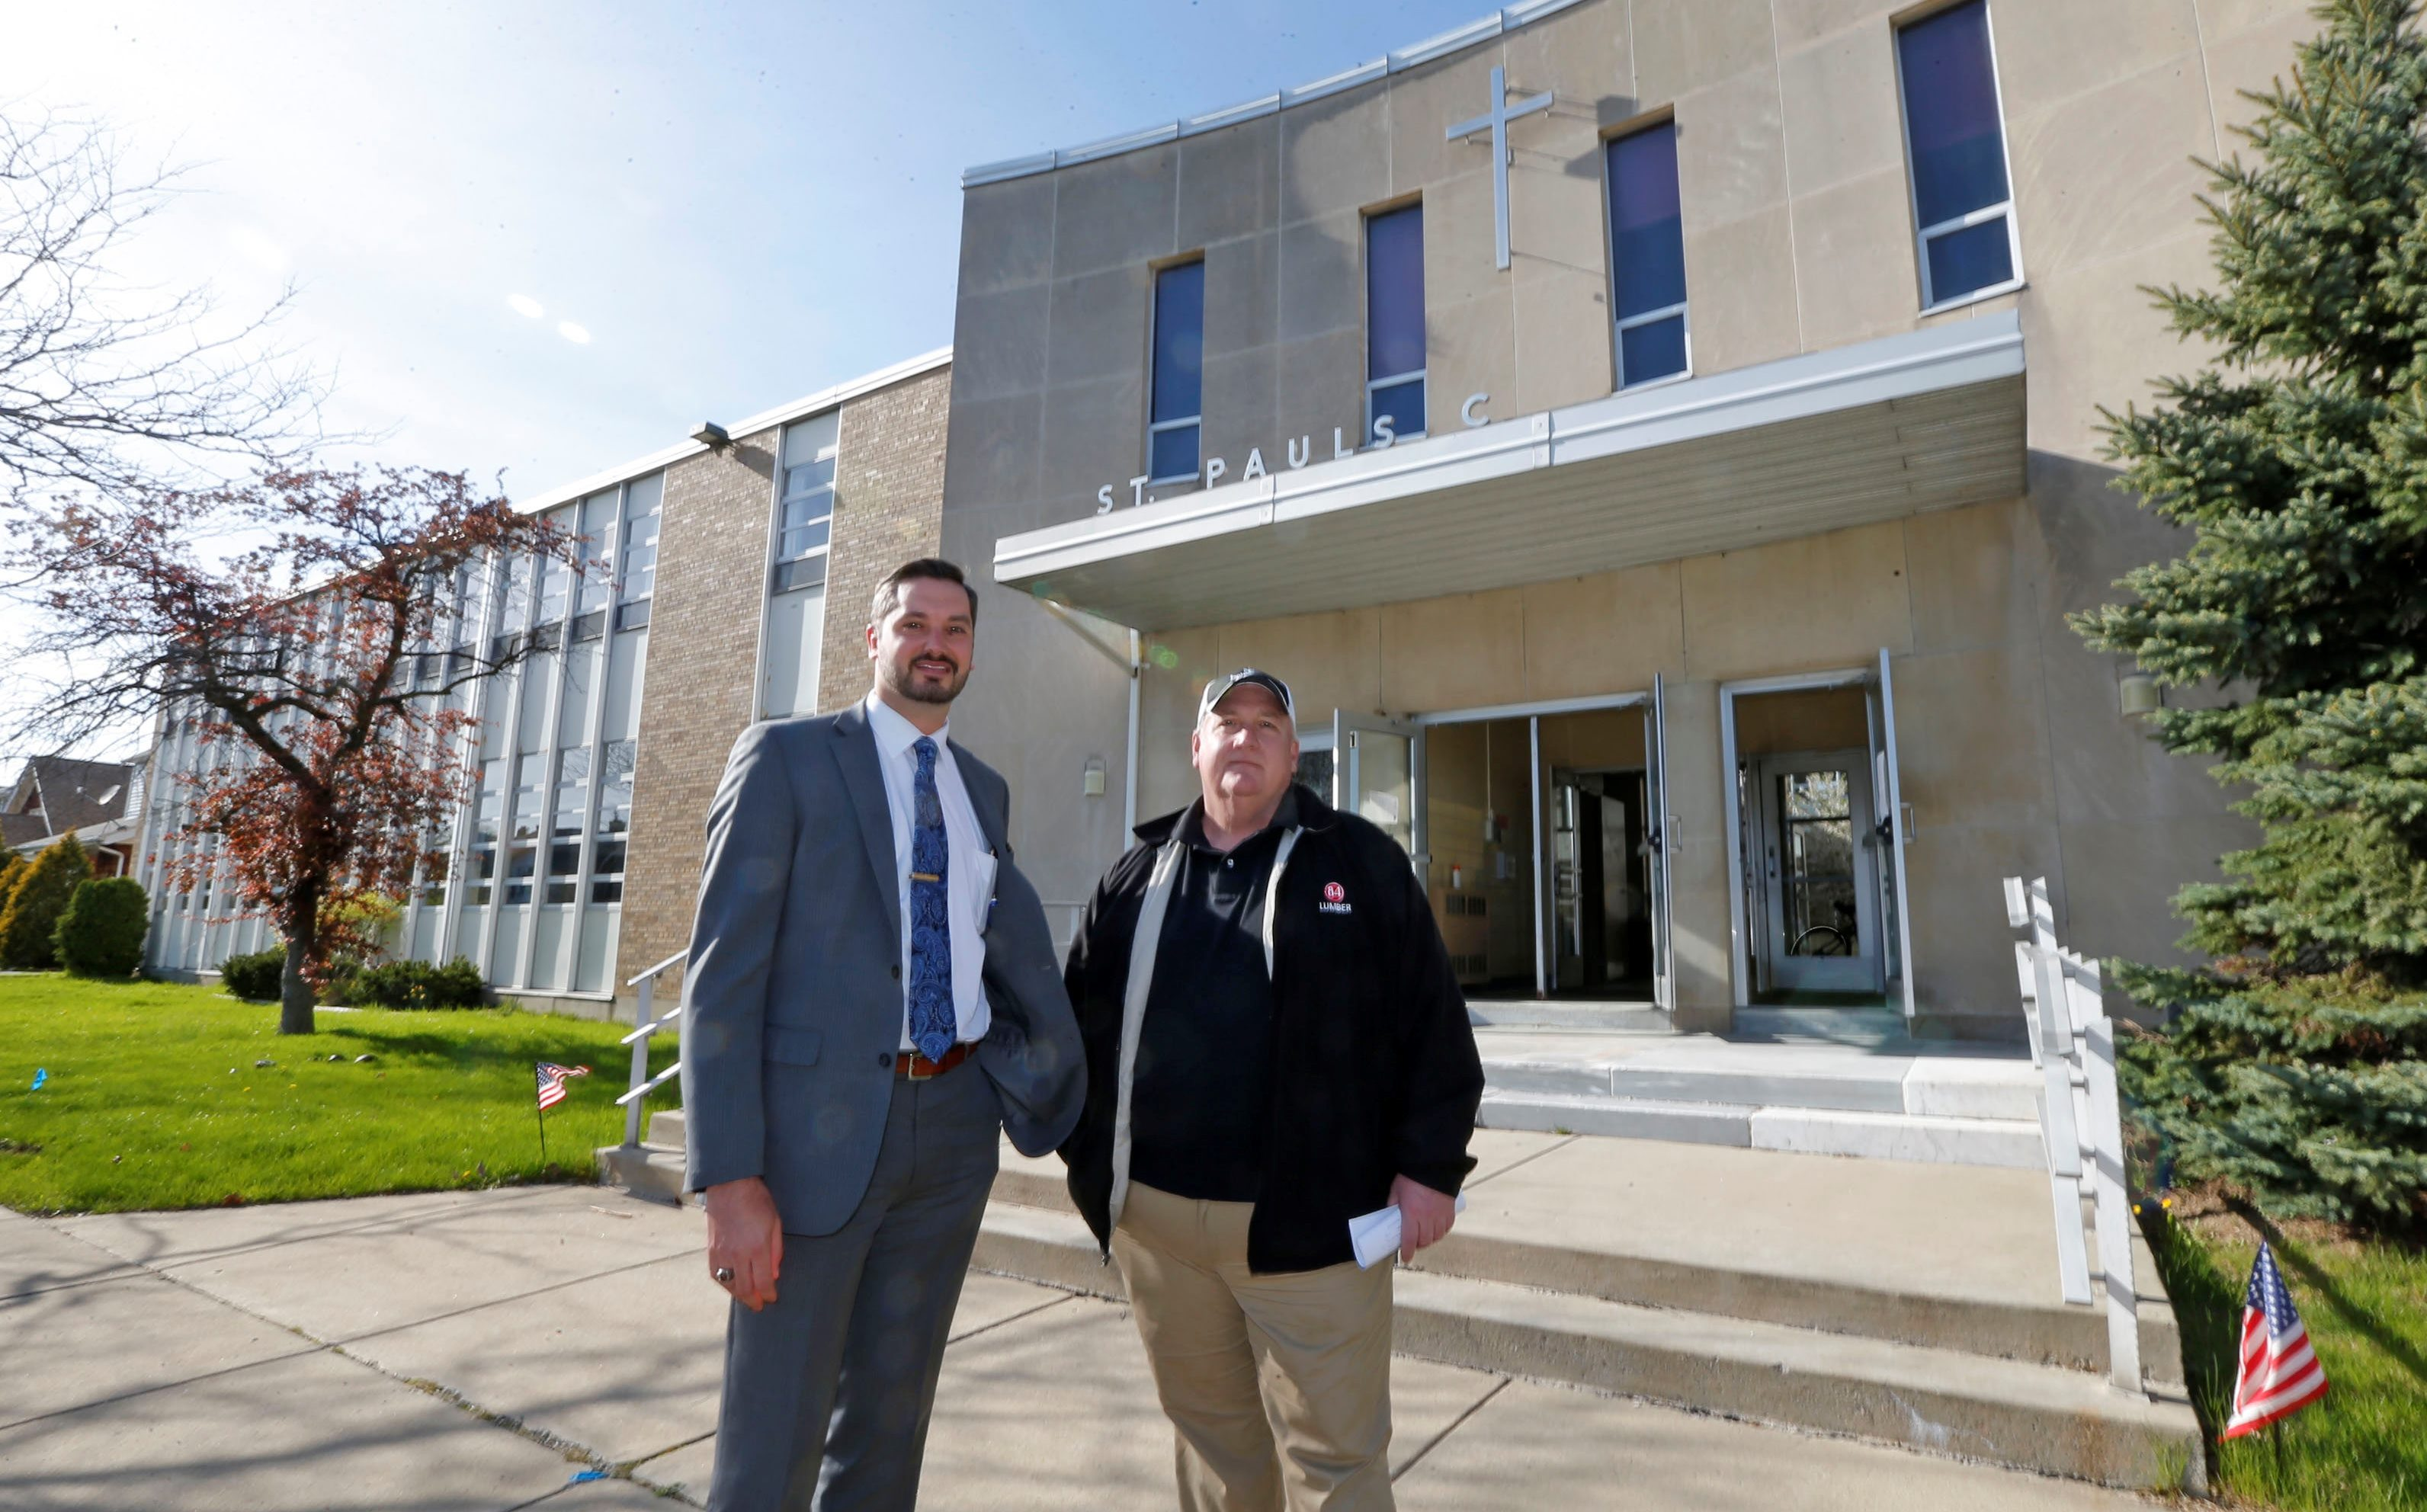 Larry Bicz, right, with his attorney Todd J. Potter, Jr.,  announced plans to begin the project that will turn the old St. Paul's school in Kenmore into 'faith-based' apartments. (Robert Kirkham/Buffalo News)